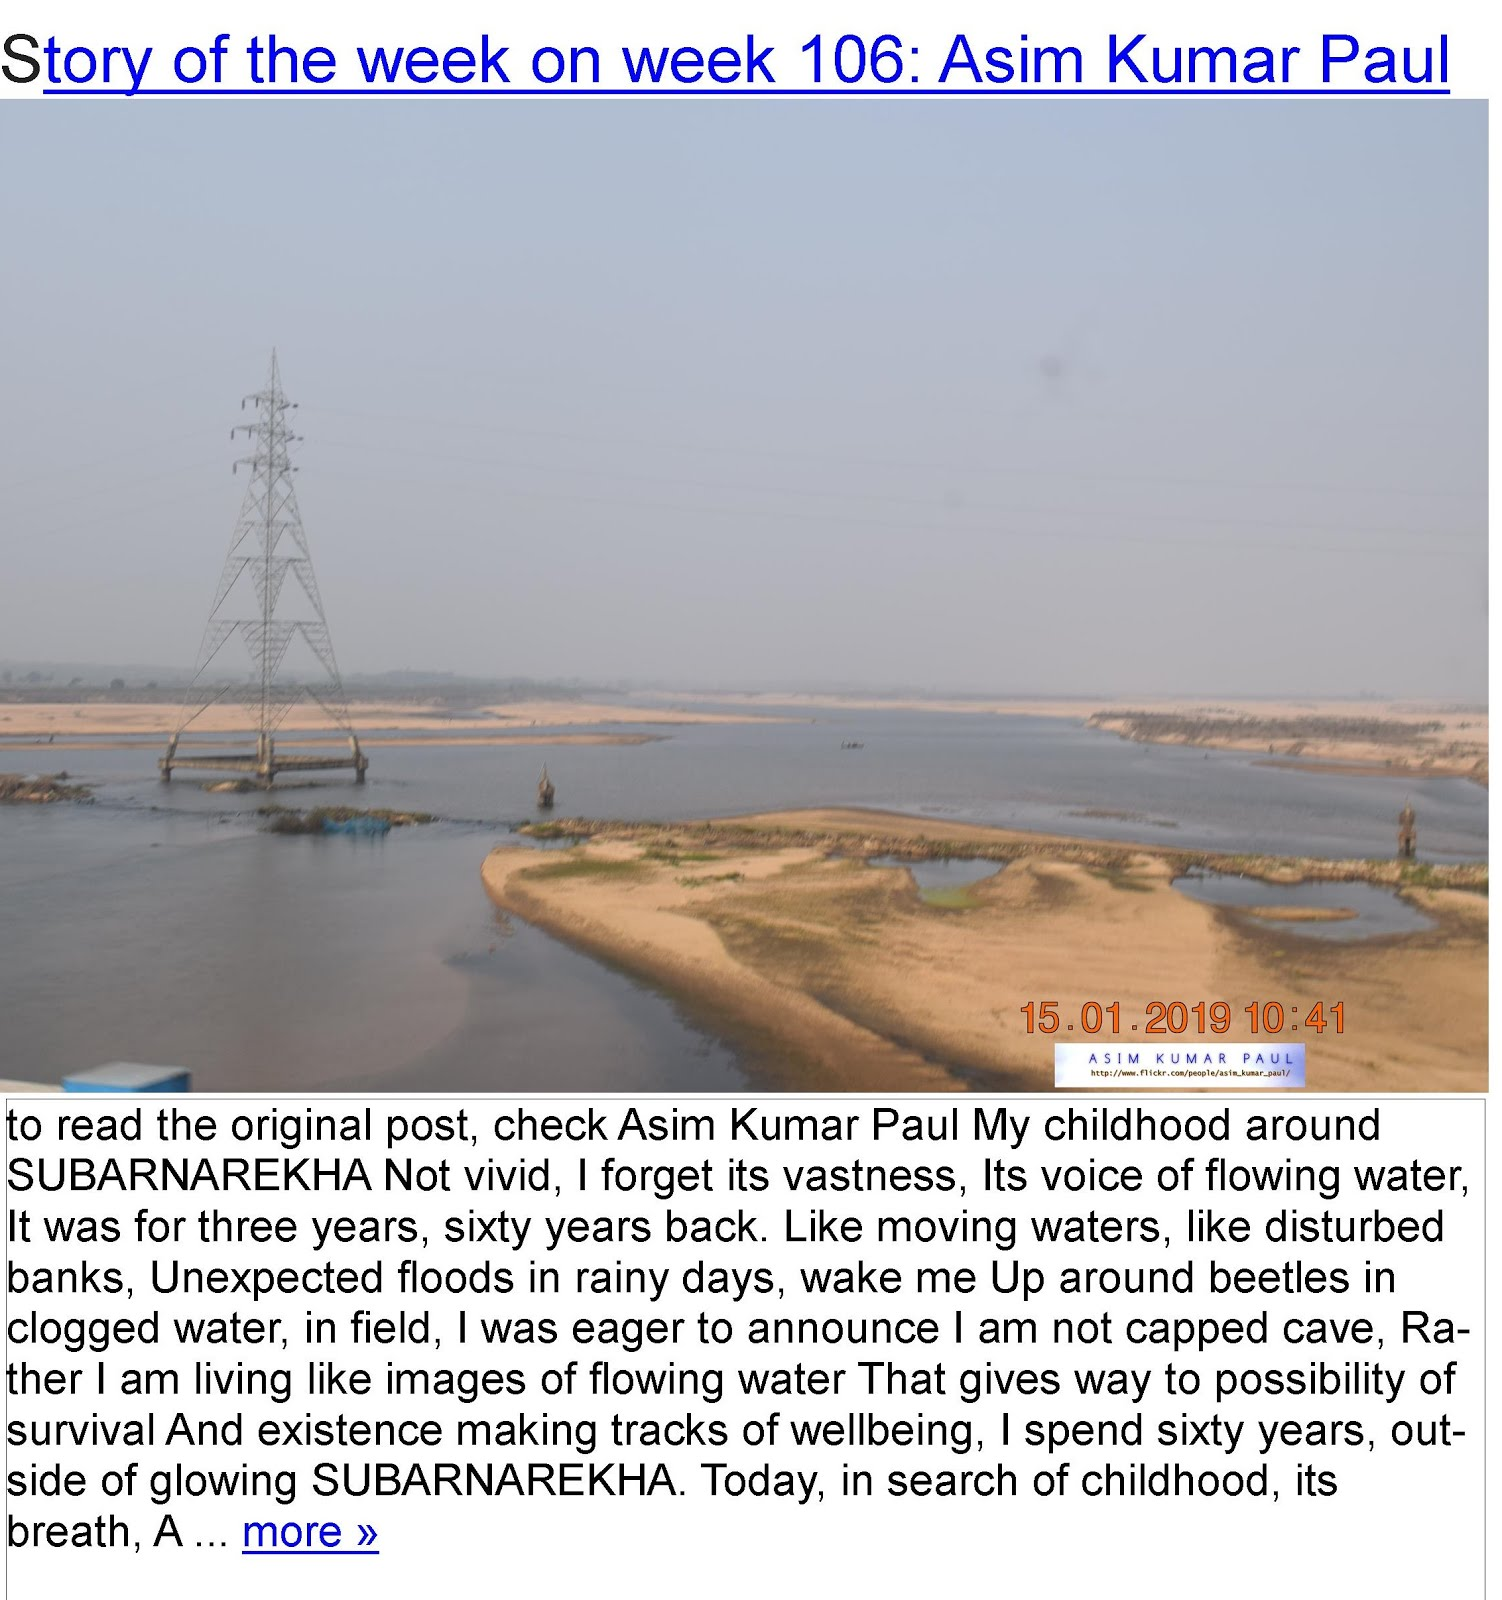 Bluebell Books Twitter Club: Story of the week on week 106: Asim Kumar Paul